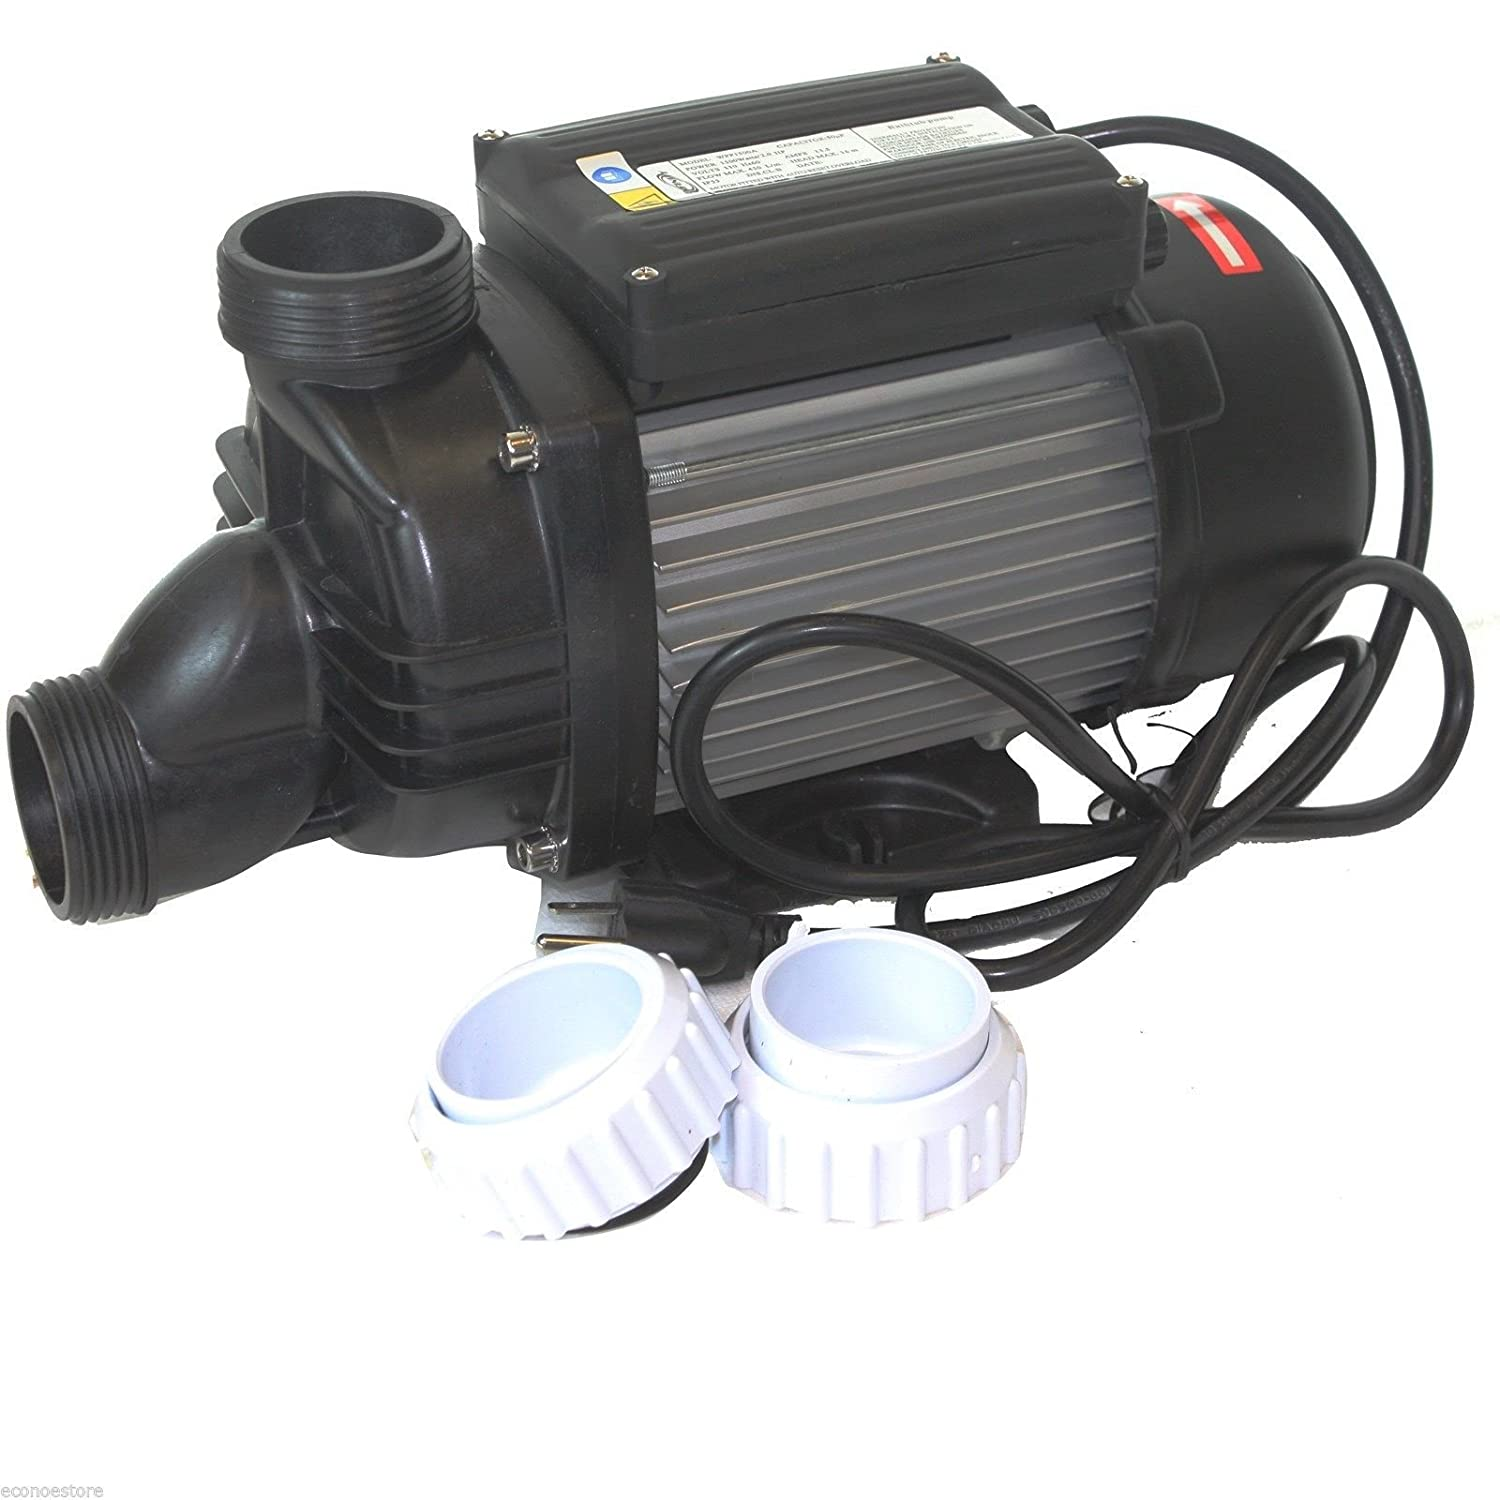 Amazon.com: Whirlpool Bath Tub Spa Pump 2hp 1500w 110v Bathtub 7020gph  Water Pump: Kitchen U0026 Dining